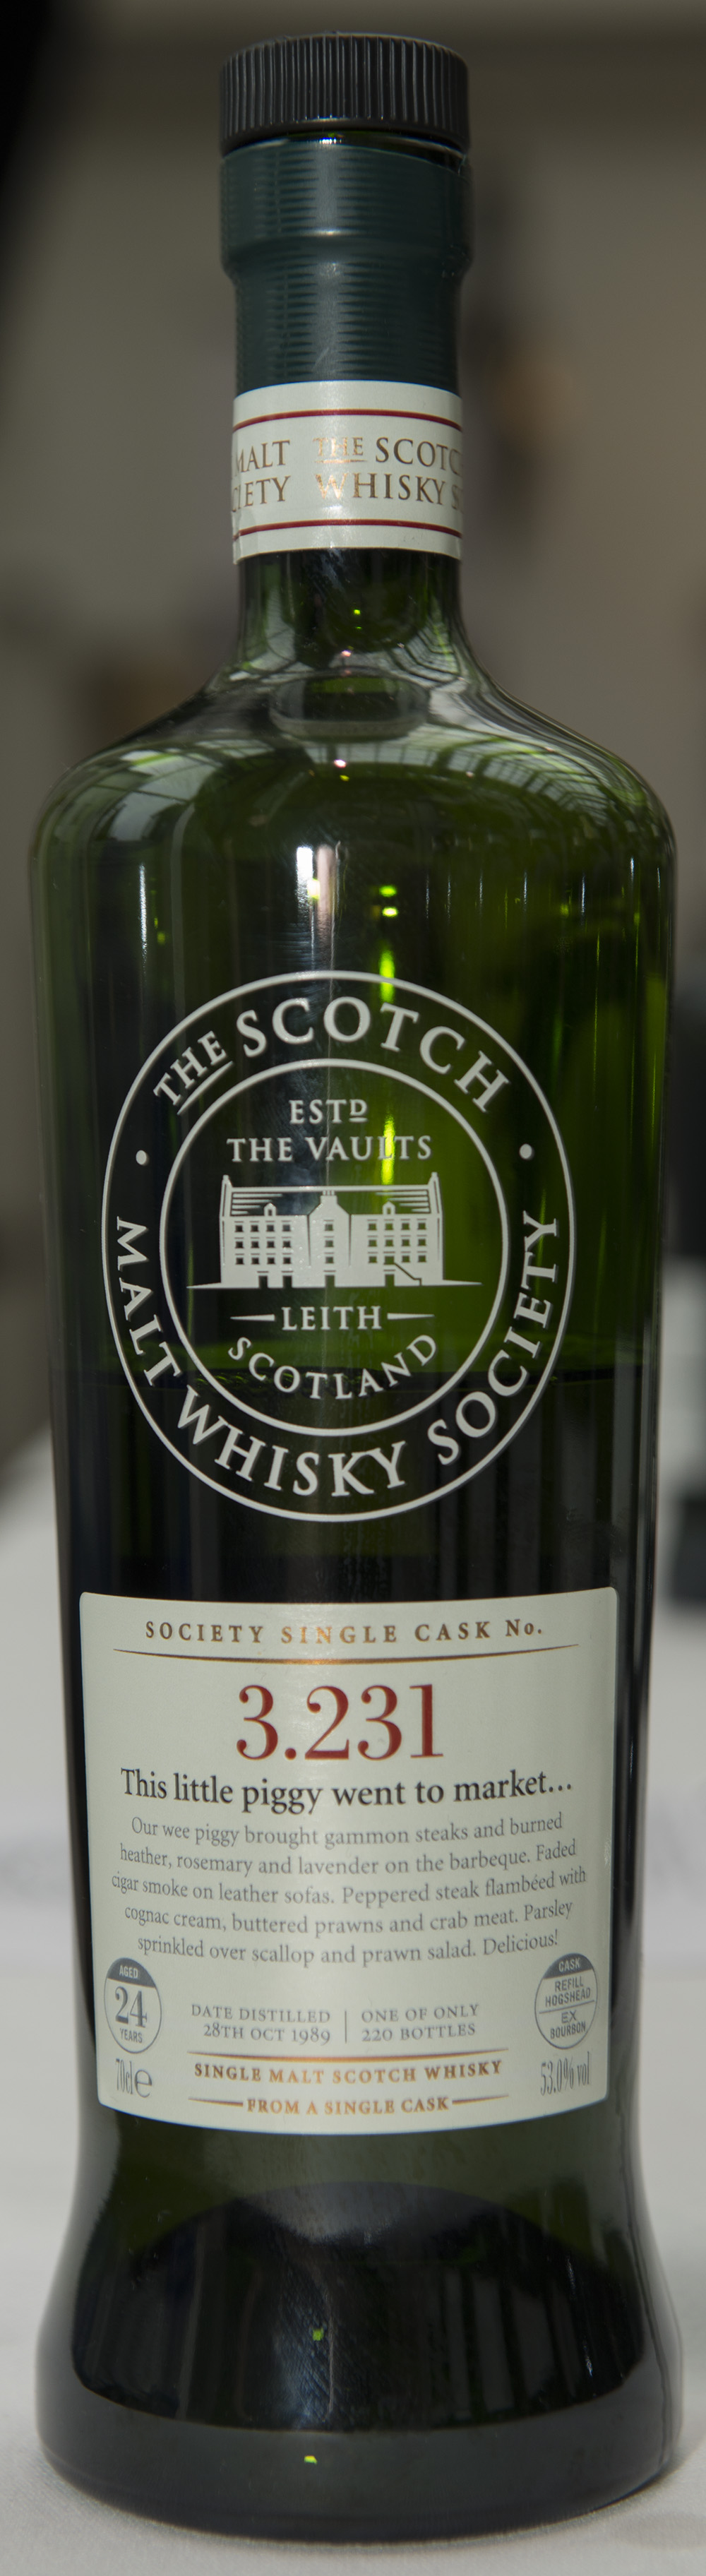 Billede: DSC_1262 - SMWS 3.231 - This little piggy went to market.jpg